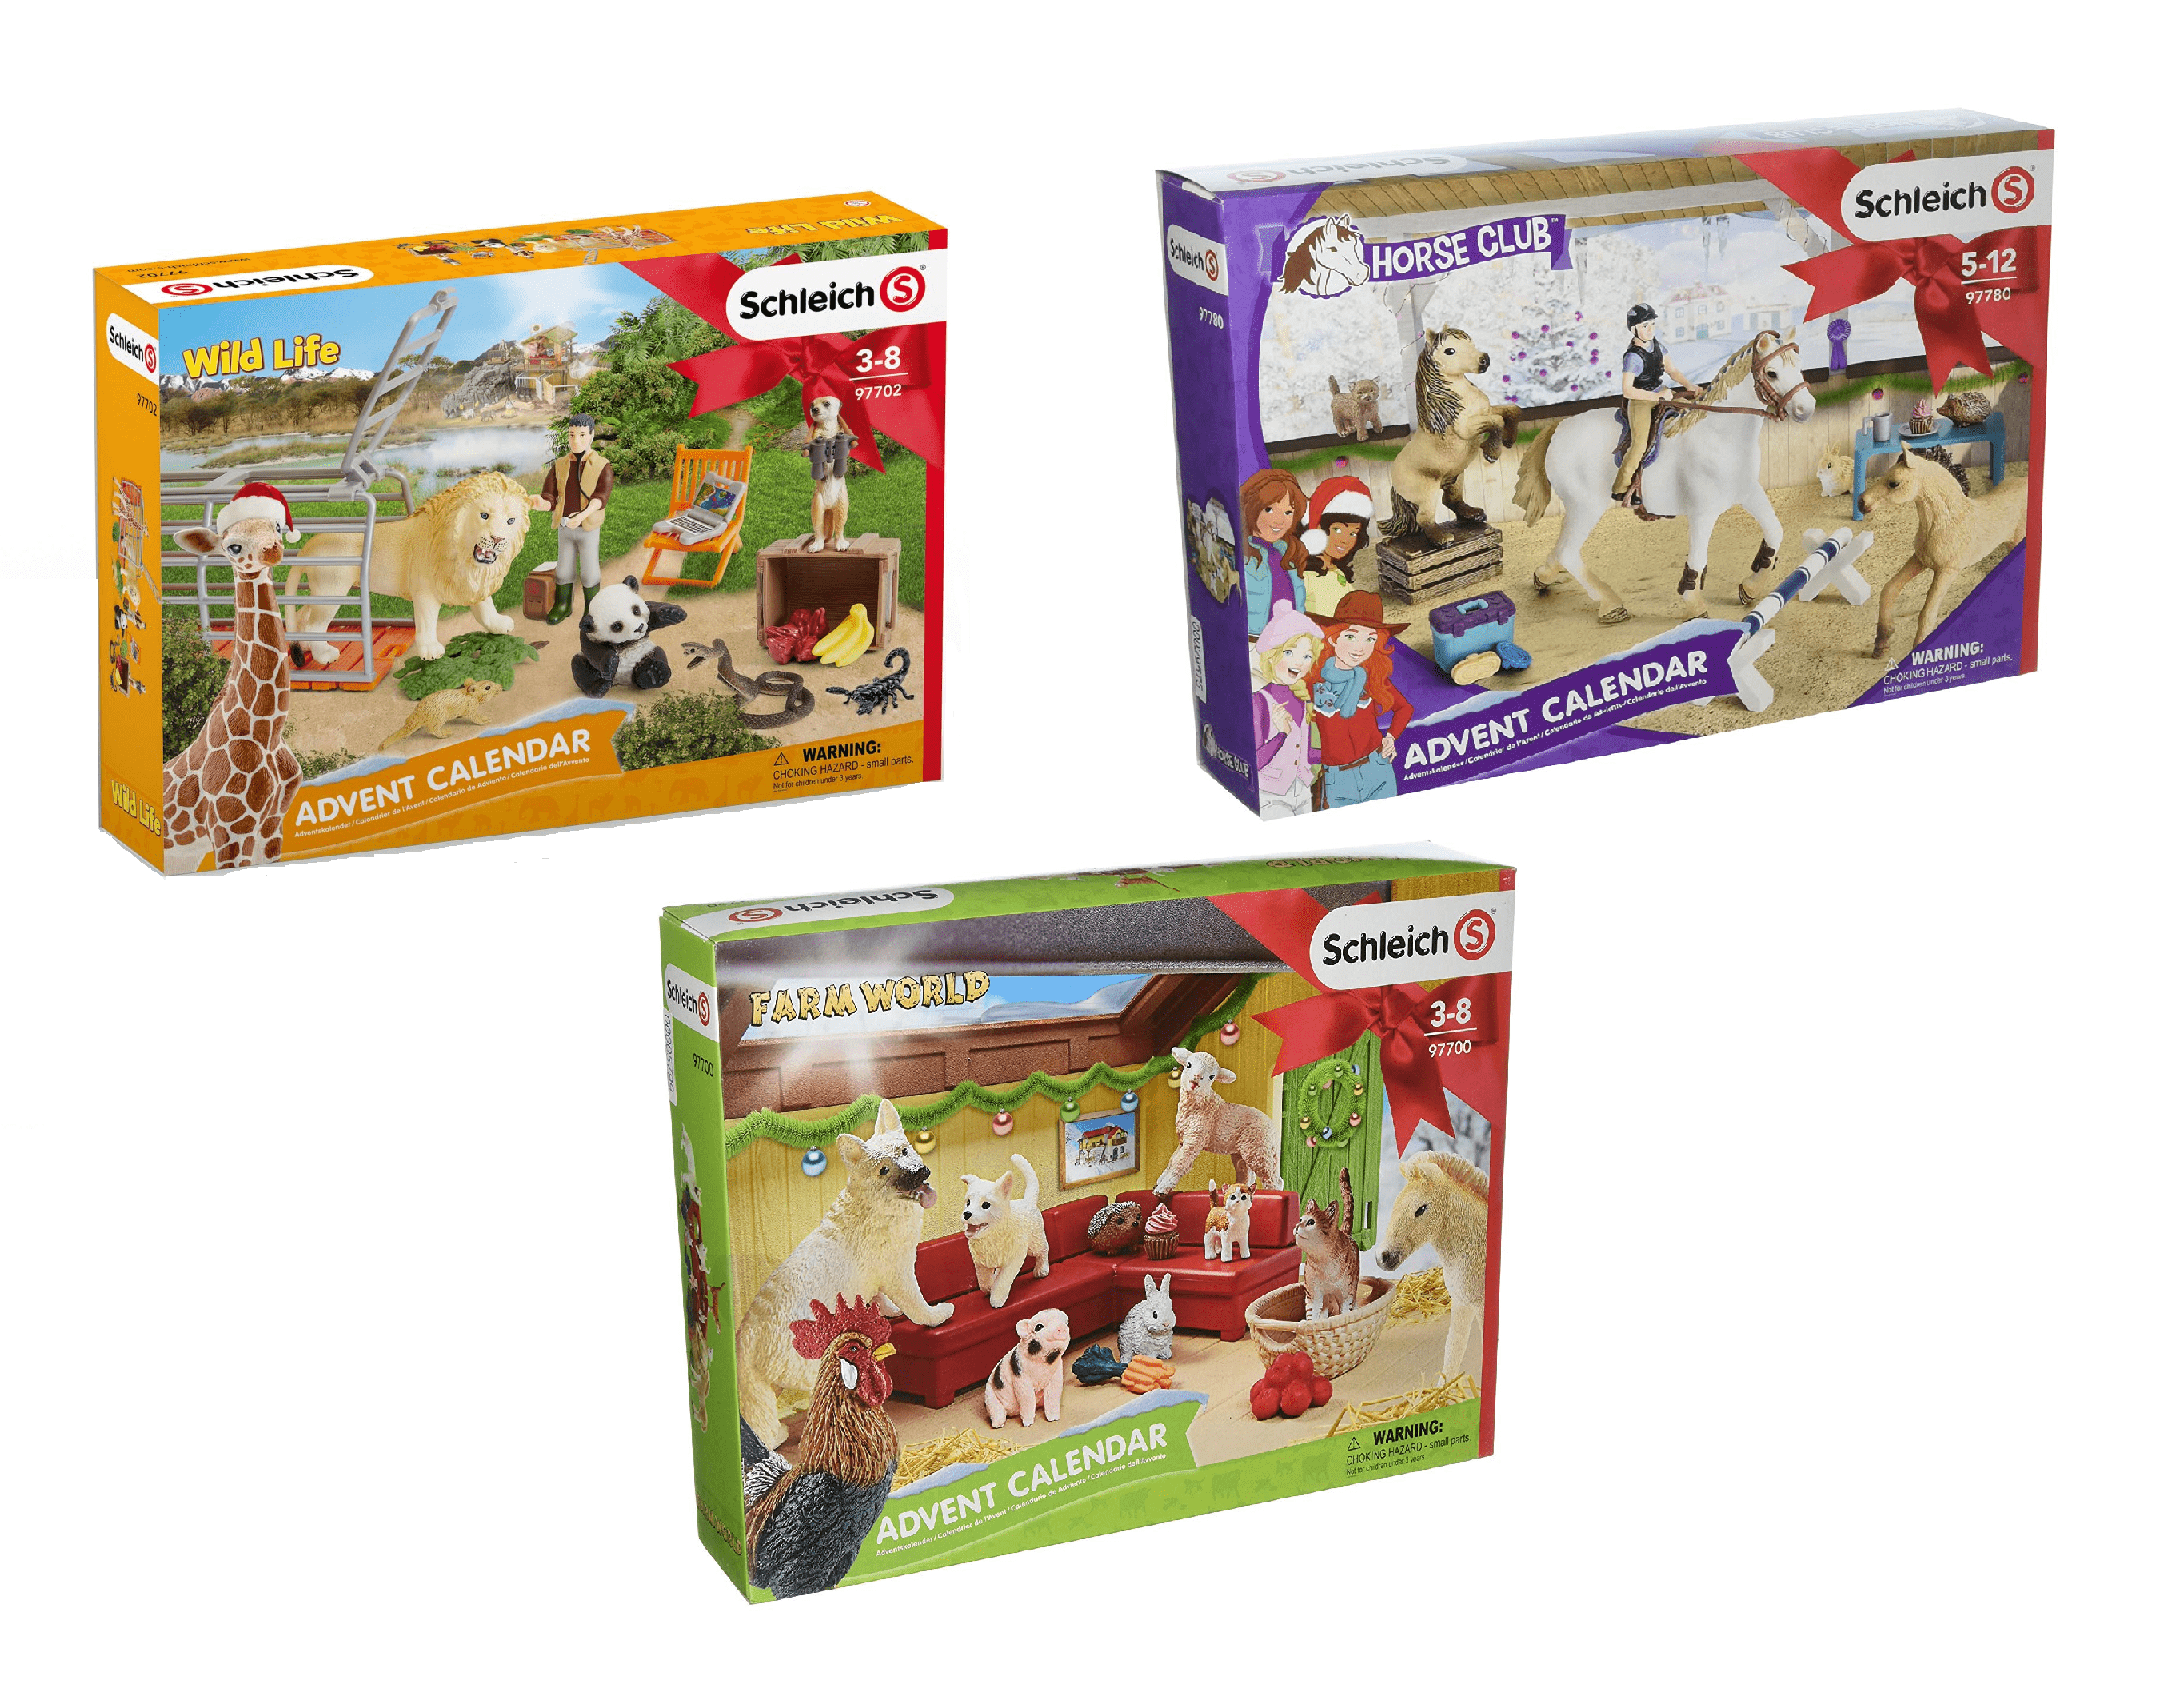 Schleich Advent Calendars 2018 Available Now!